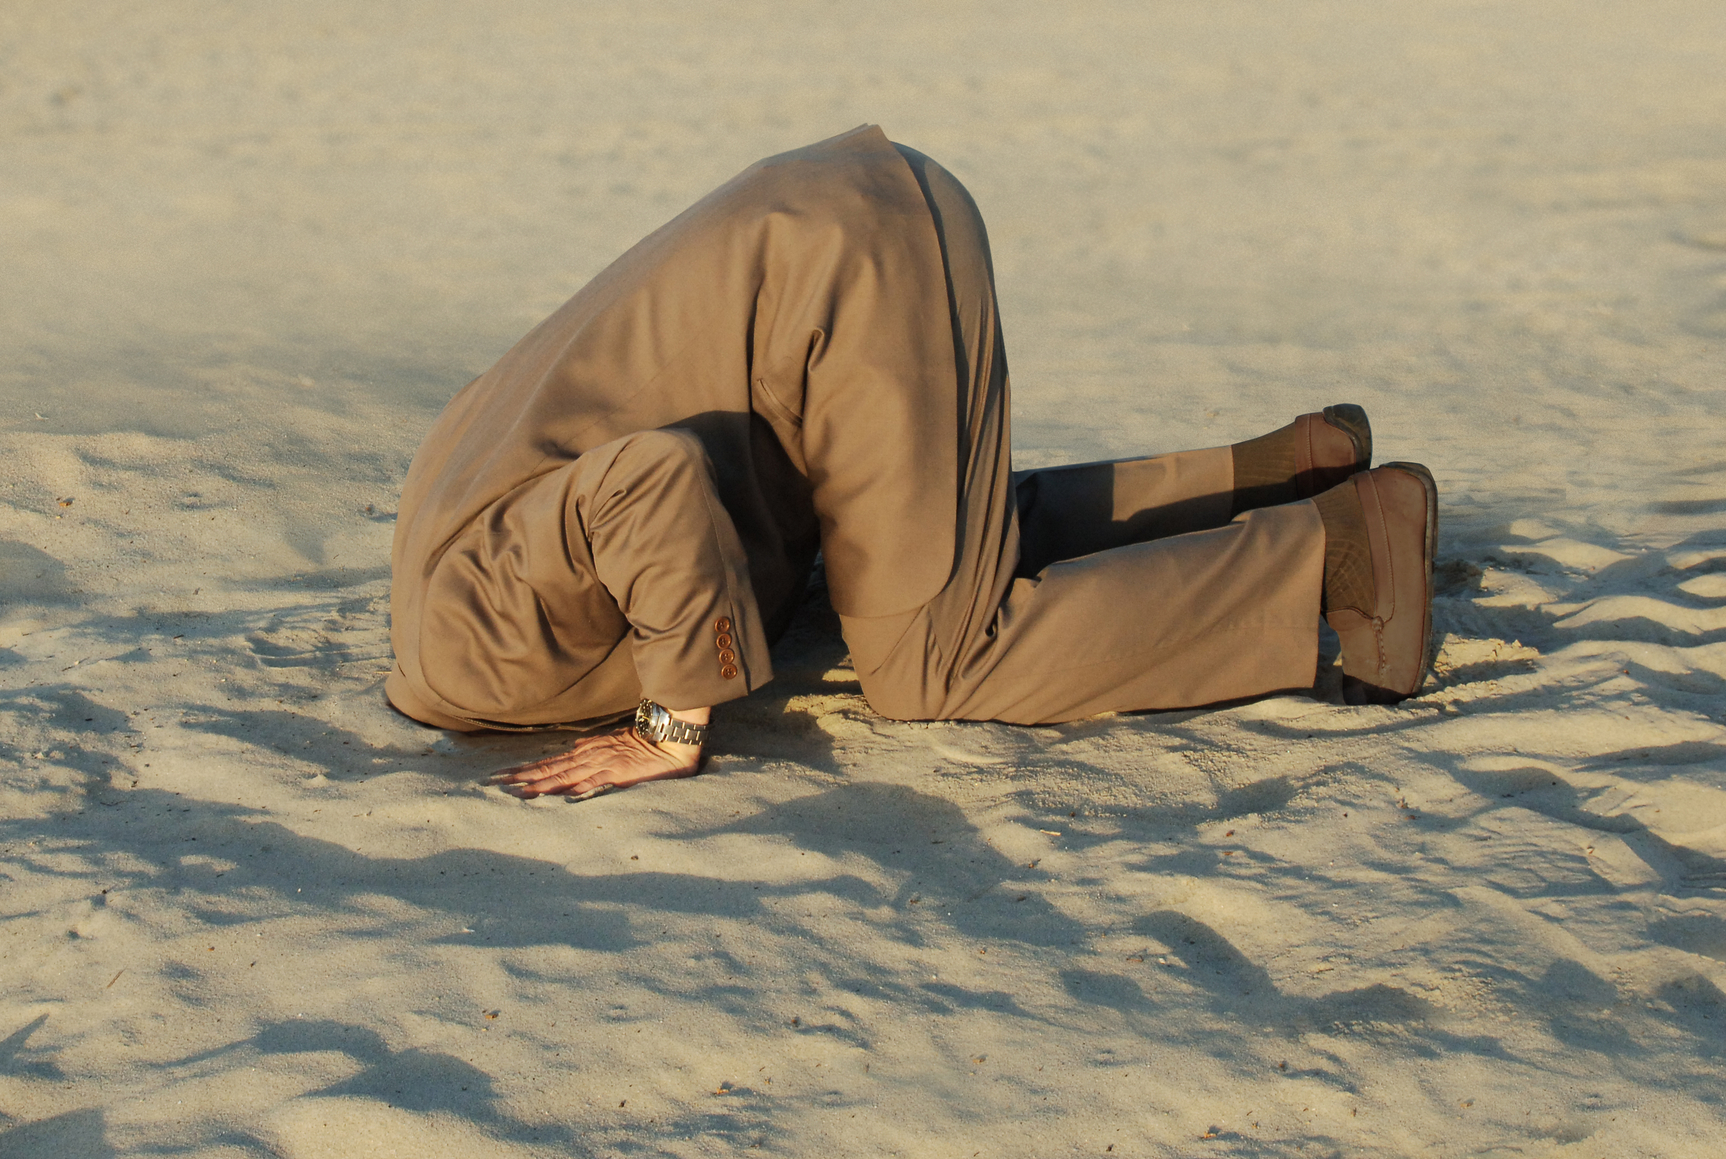 Dominic Byrne DigiToro Blog - Dear CEO, your head is in the sand